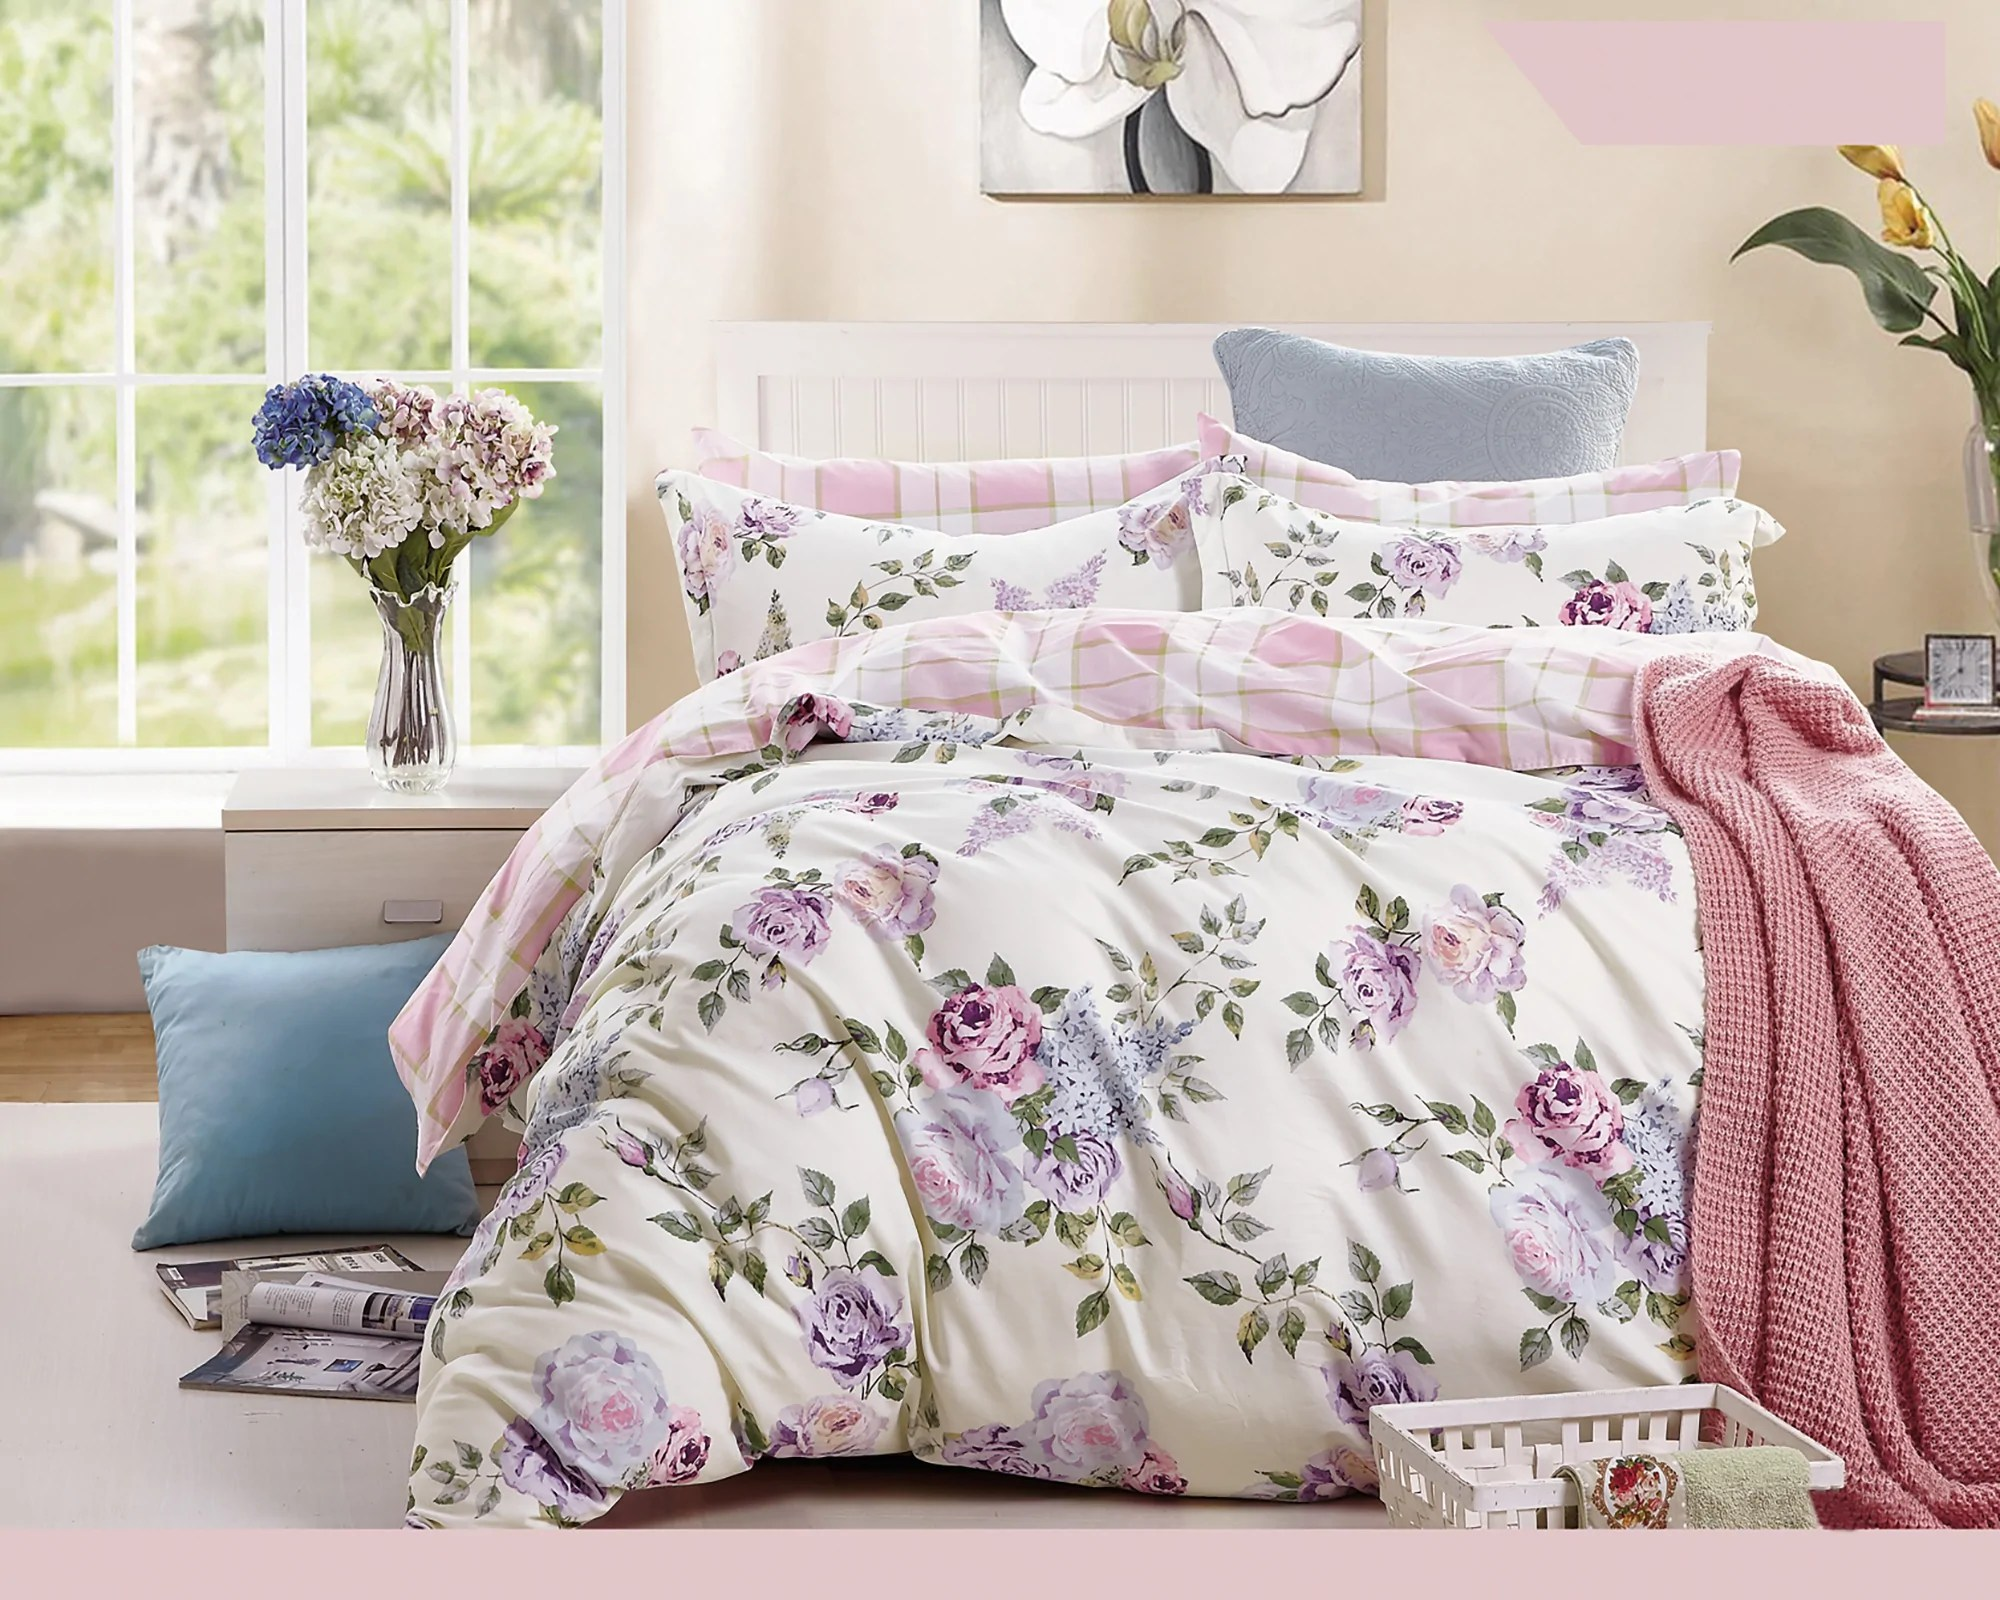 Pink Duvet Cover Pink Purple Roses 3 Piece 100 Cotton Bedding Set Duvet Cover And Pillow Shams